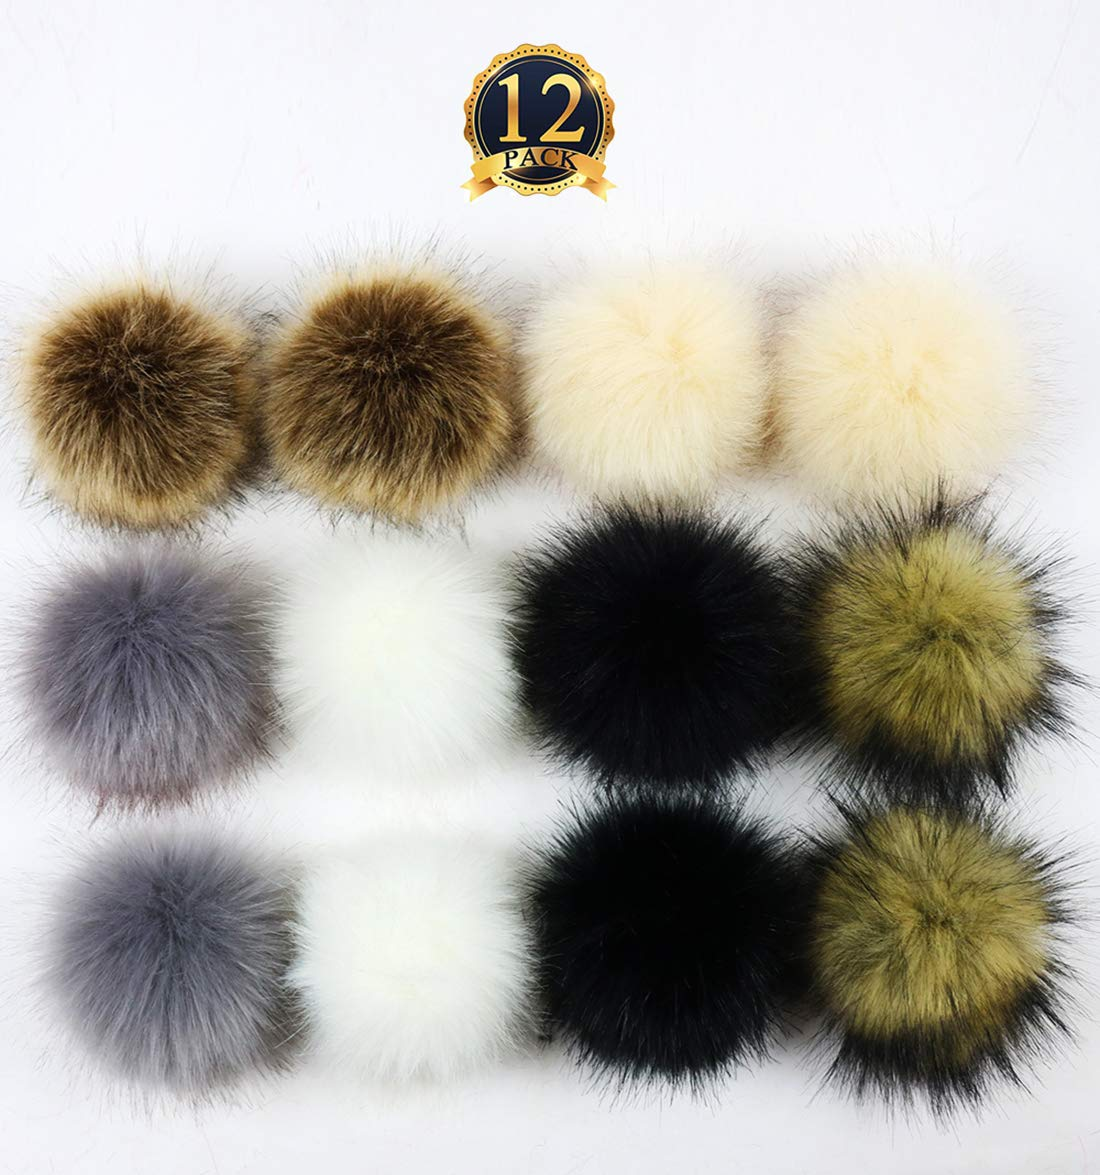 Faux Fur Pom Pom Ball Fluffy Pompoms with Elastic Loop for DIY Hats Beanies Shoes Scarves Gloves Bag Keychain Charms Knitting Accessories 12 Pieces